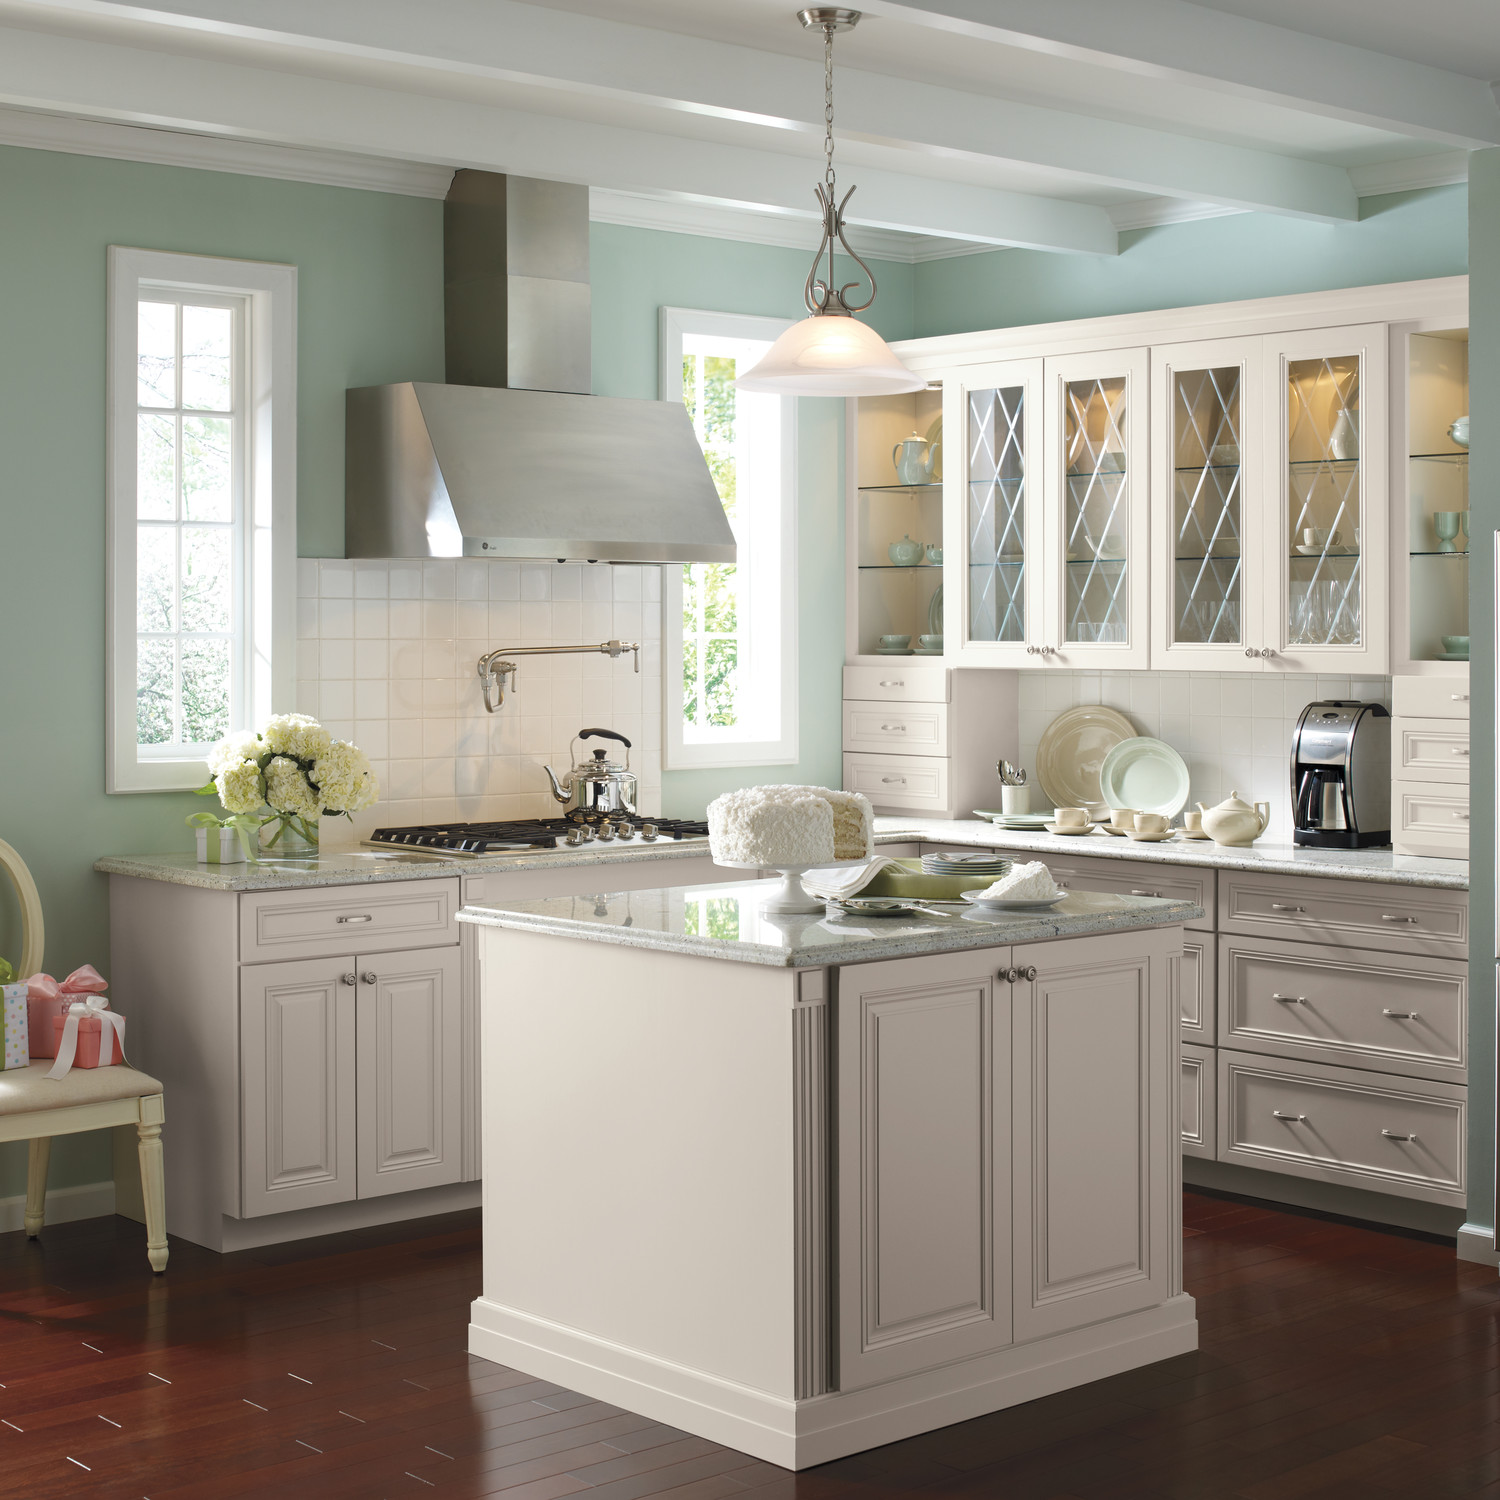 Superior Martha Stewart Kitchen Appliances #2: Choosing A Kitchen Island: 13 Things You Need To Know